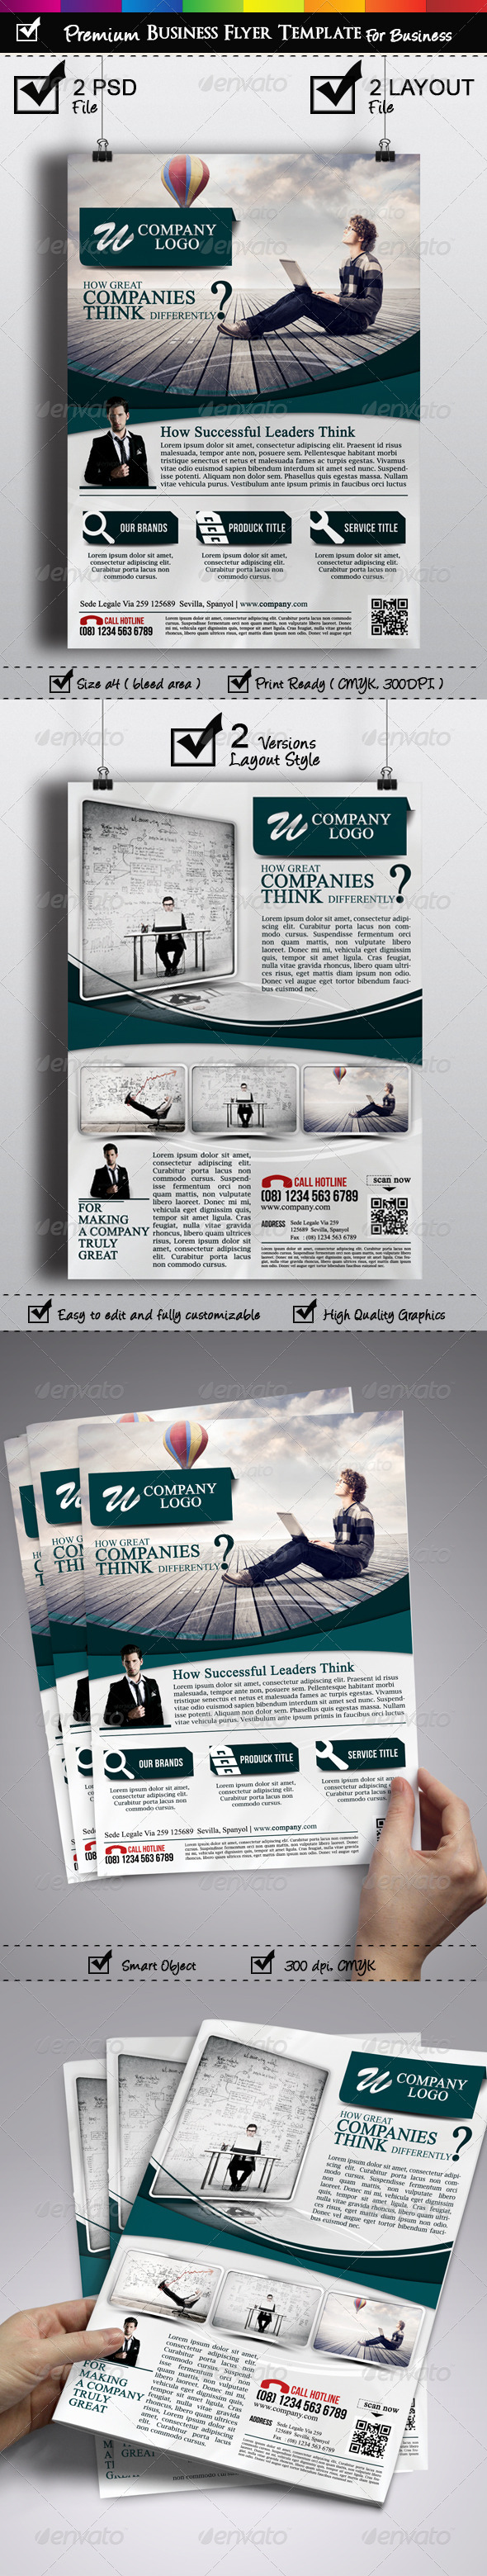 GraphicRiver Premium Business Flyer Template 2 Versions 7133320